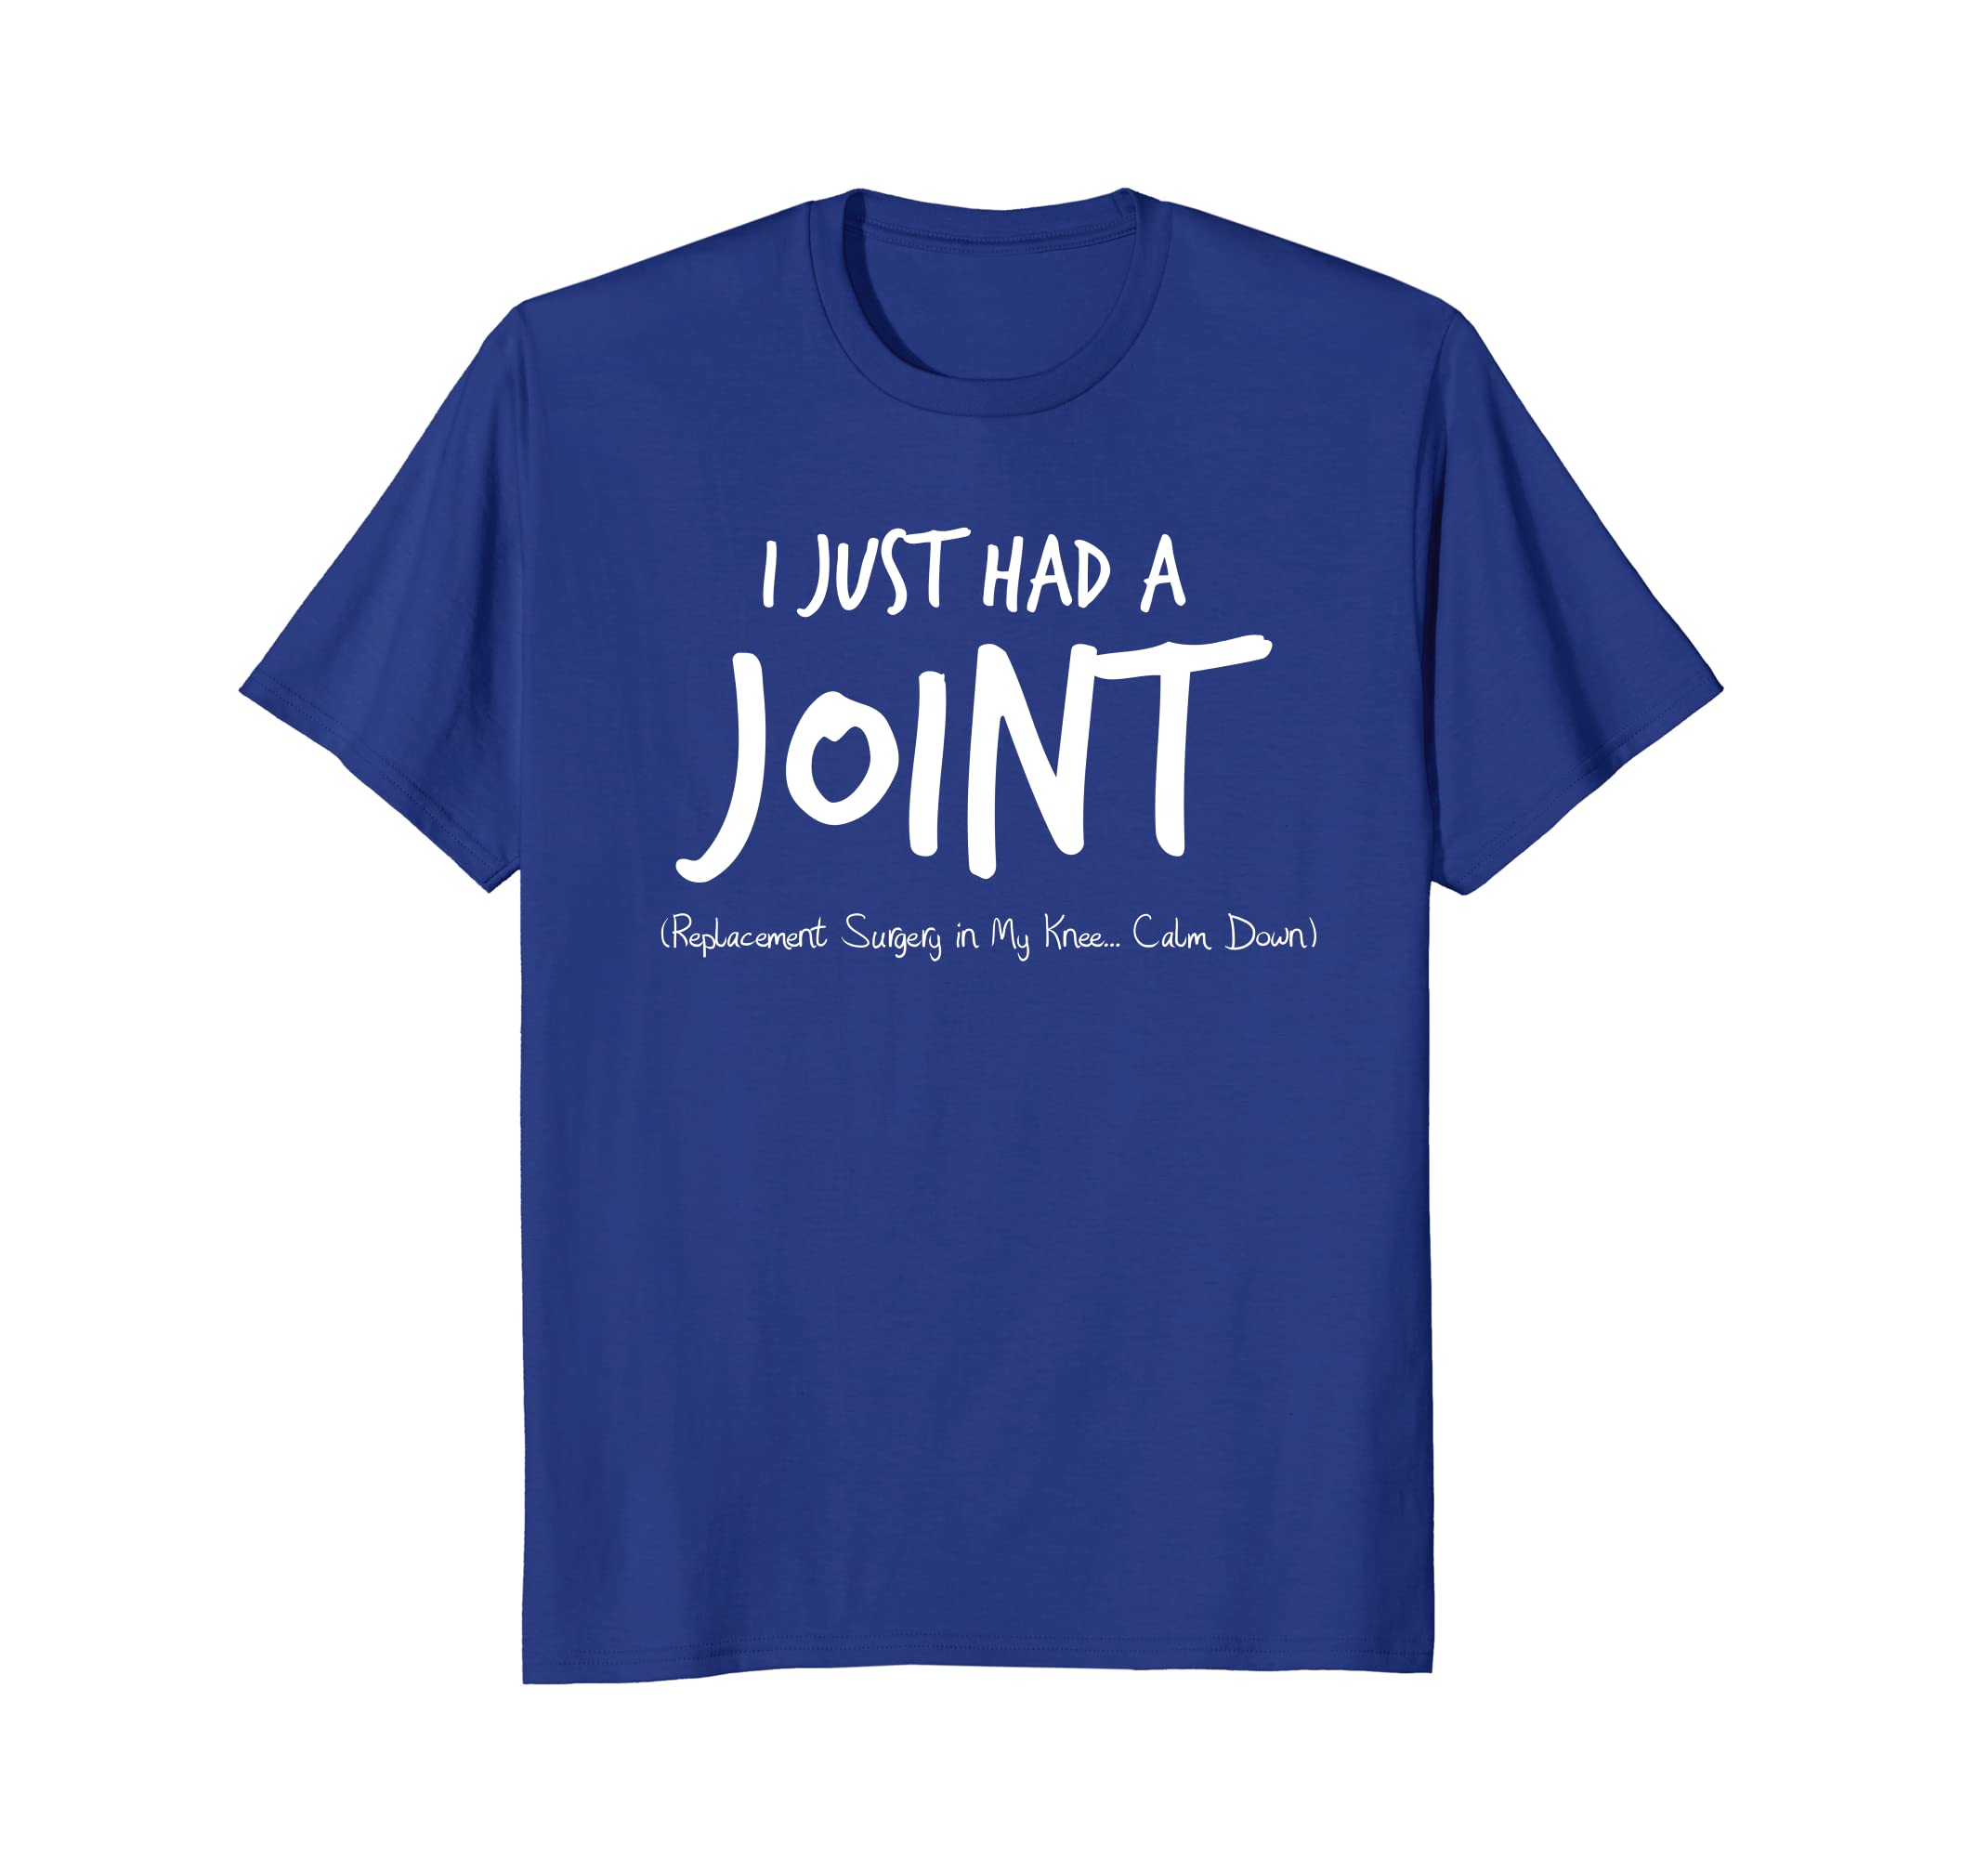 93eeeeef6 Amazon.com: I Just Had A Joint Replacement Surgery In My Knee T-Shirt:  Clothing